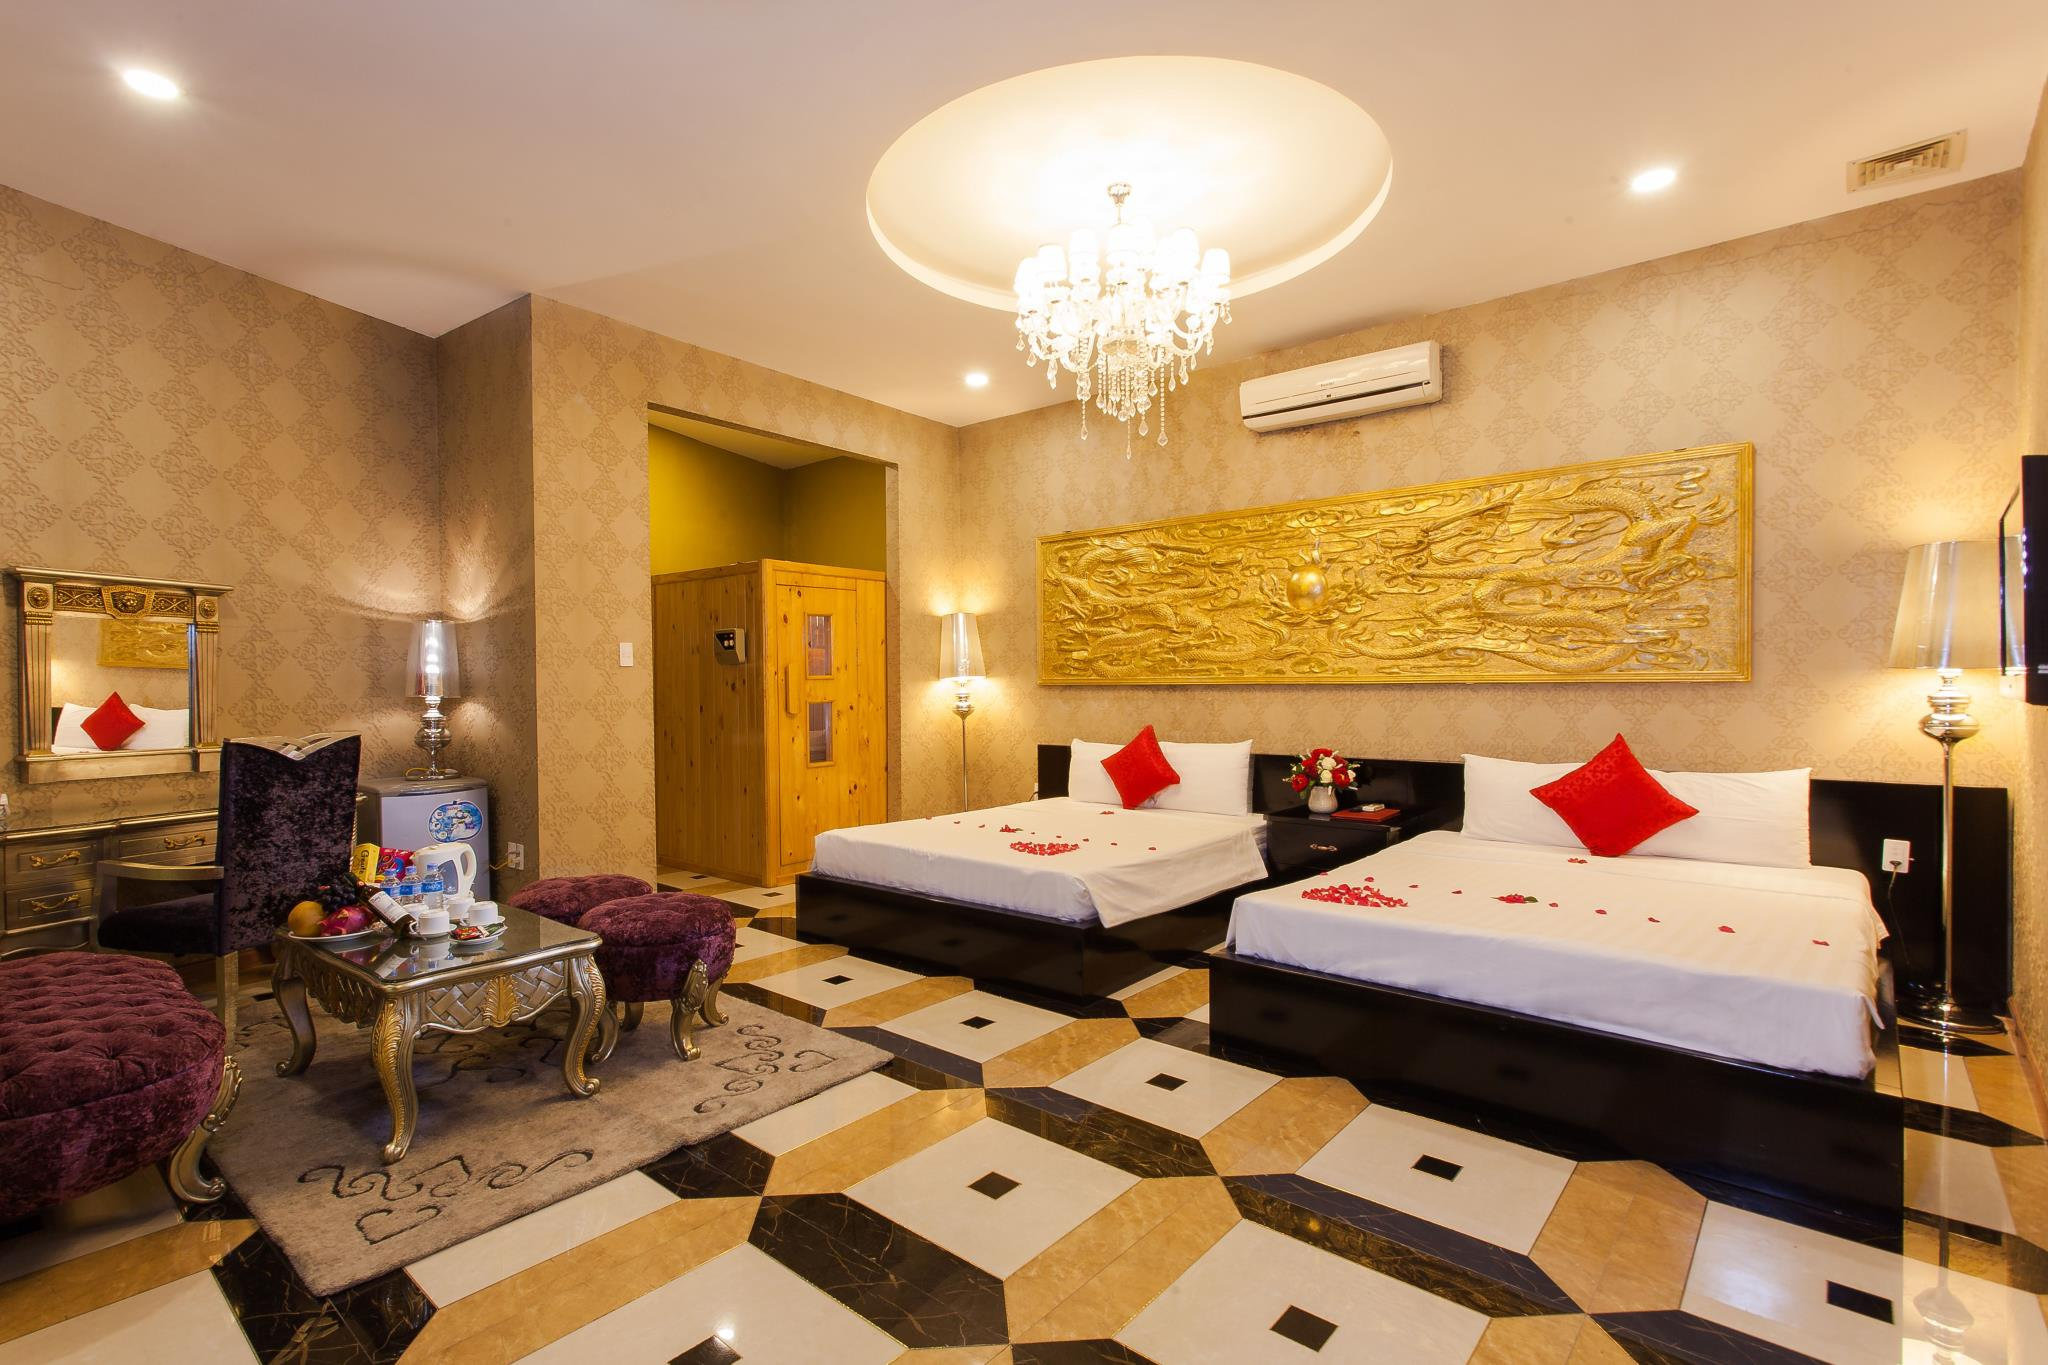 Helios Legend Hotel - best hotels in hanoi old quarter